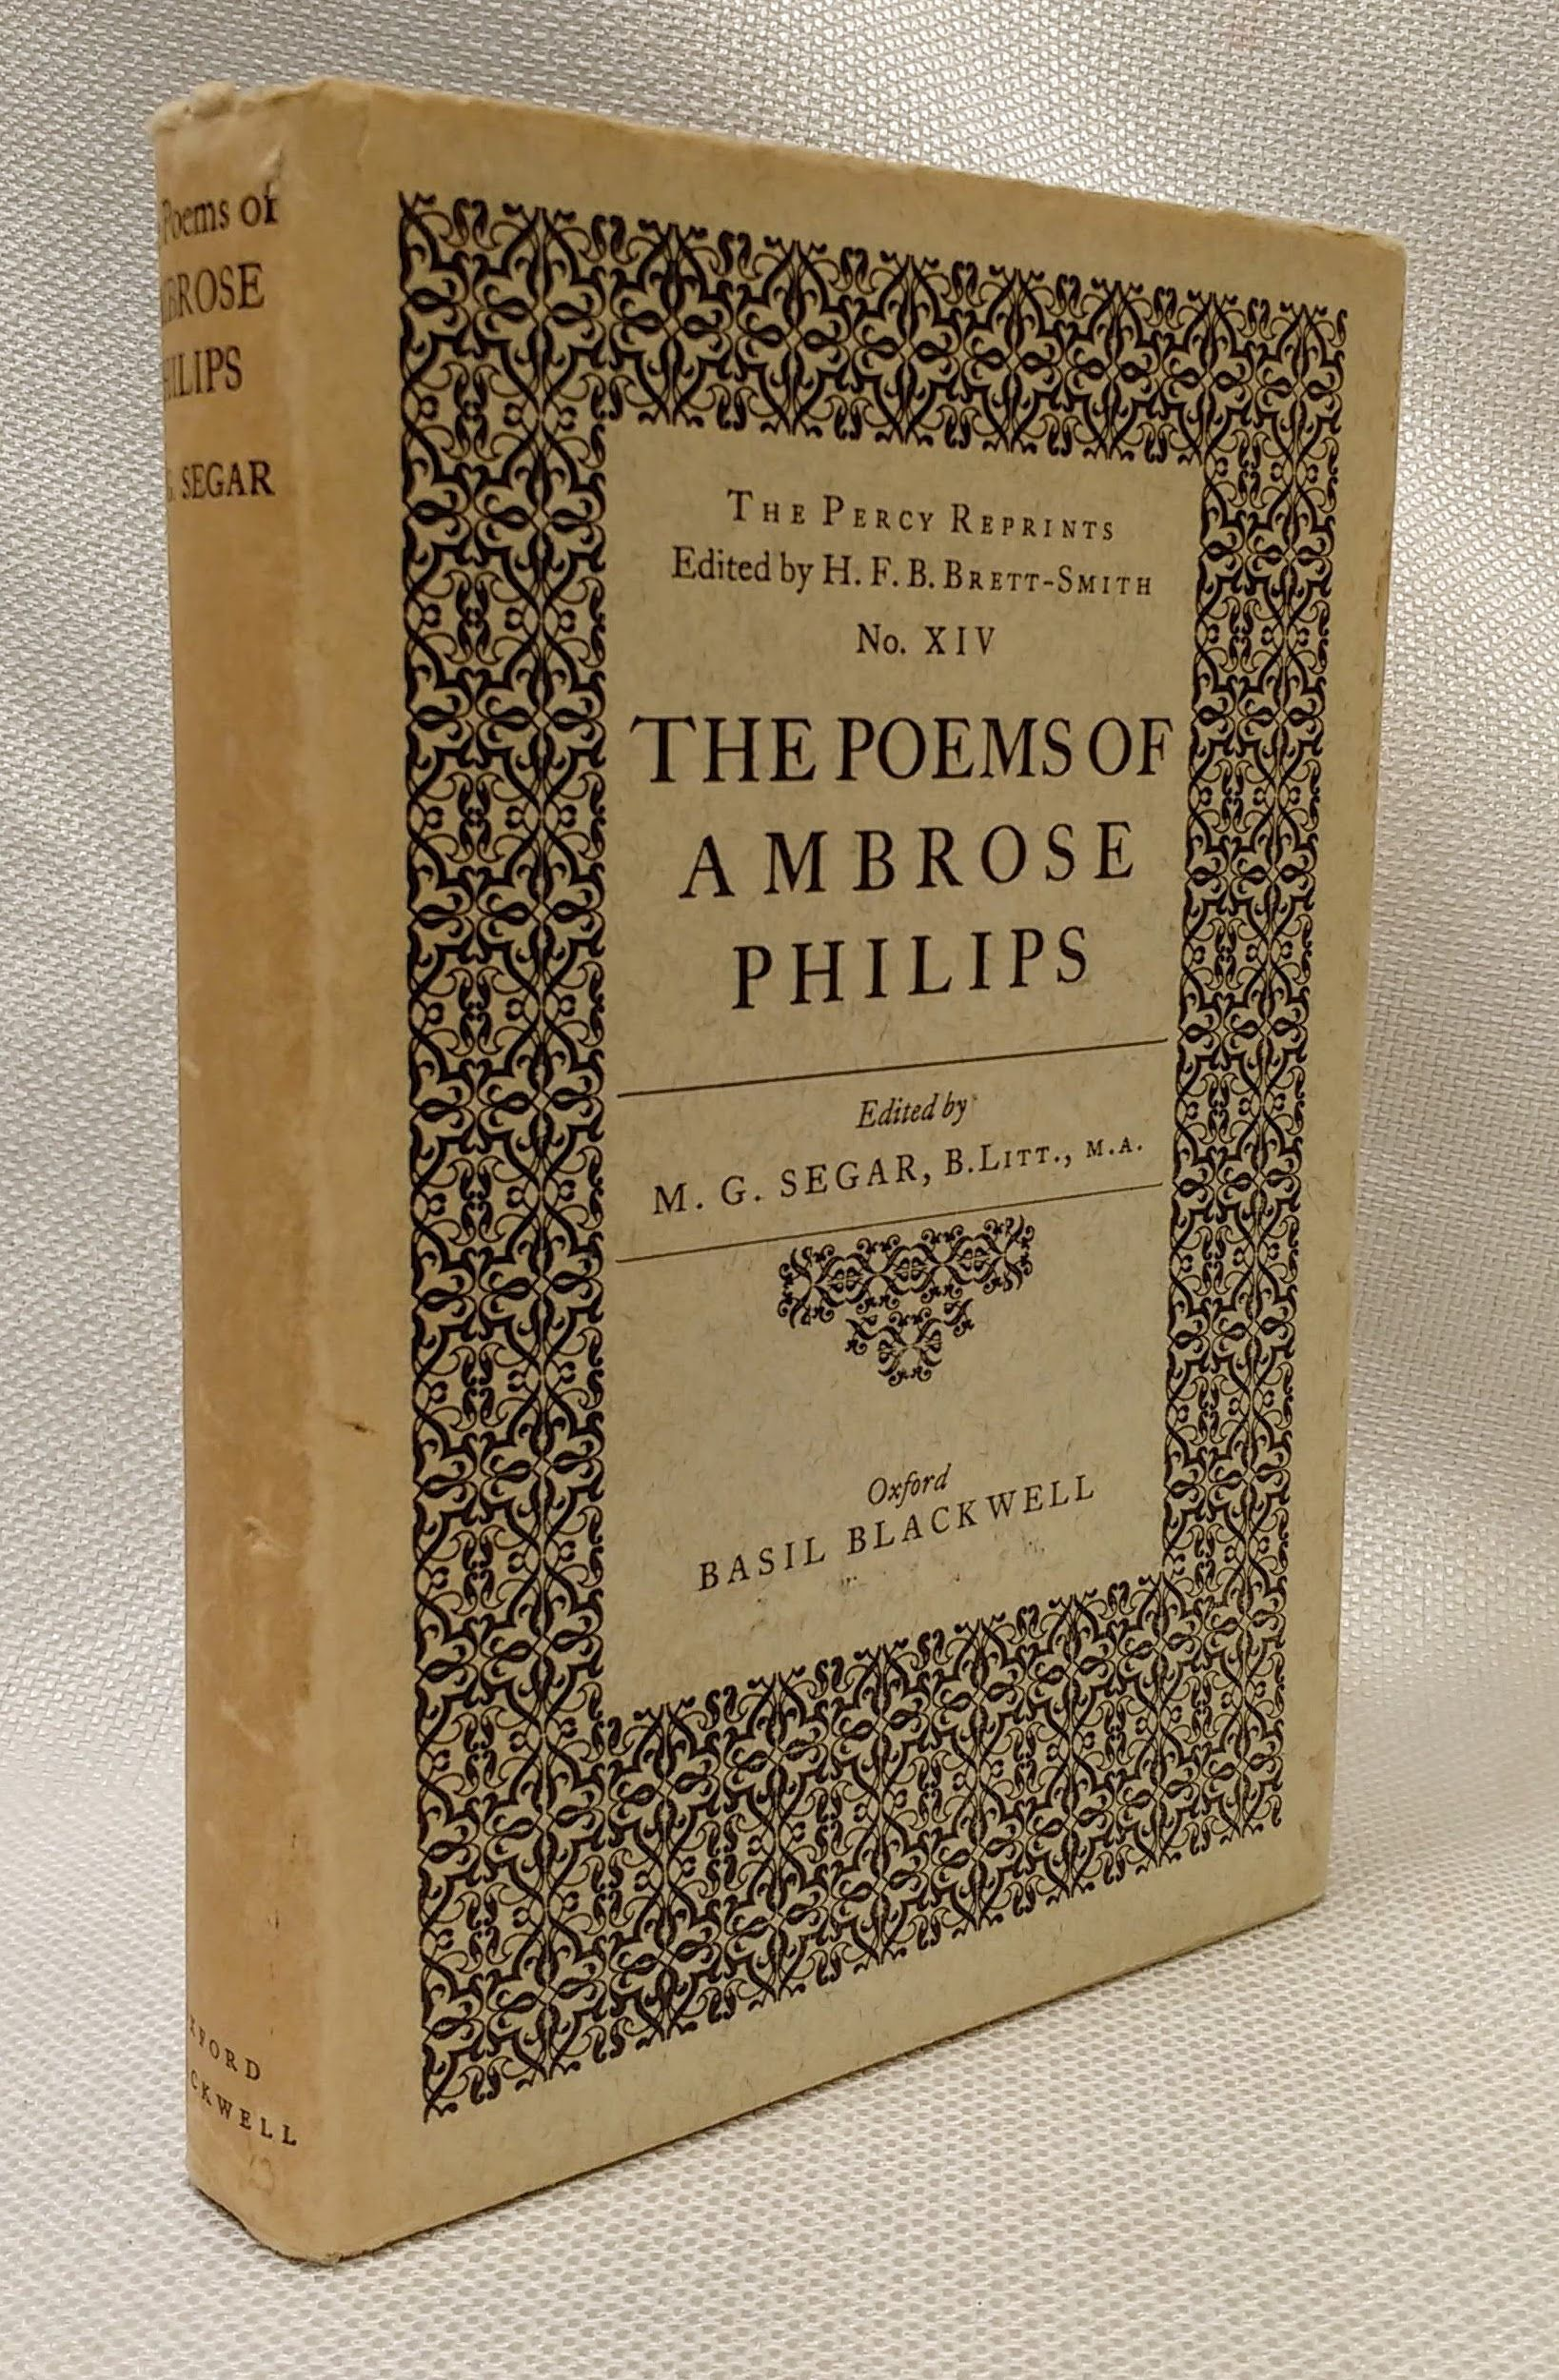 The Poems of Ambrose Philips, Philips, Ambrose; Segar, M. G. [ed.]